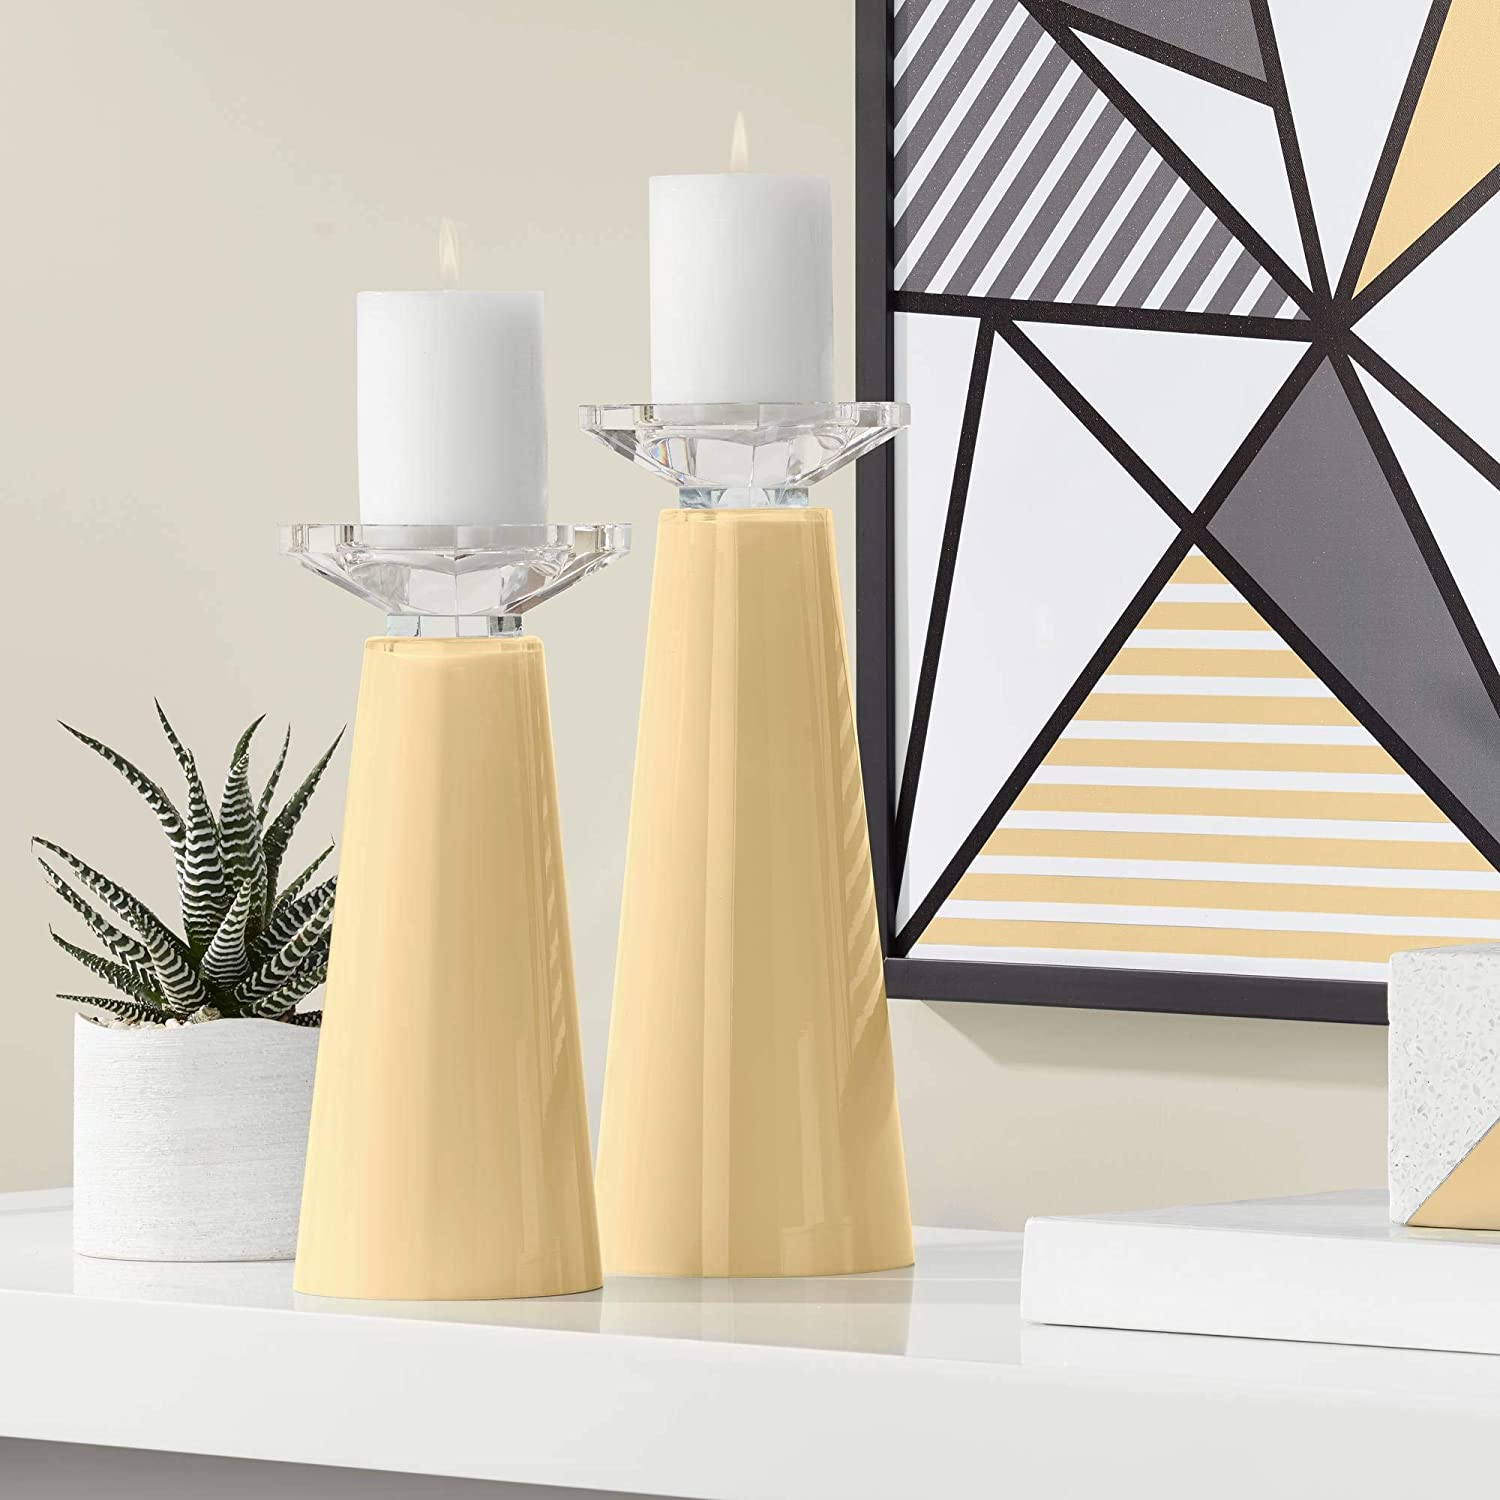 Max 86% OFF Color + Plus Meghan Humble Gold Candle Pillar Glass Set Choice Holders